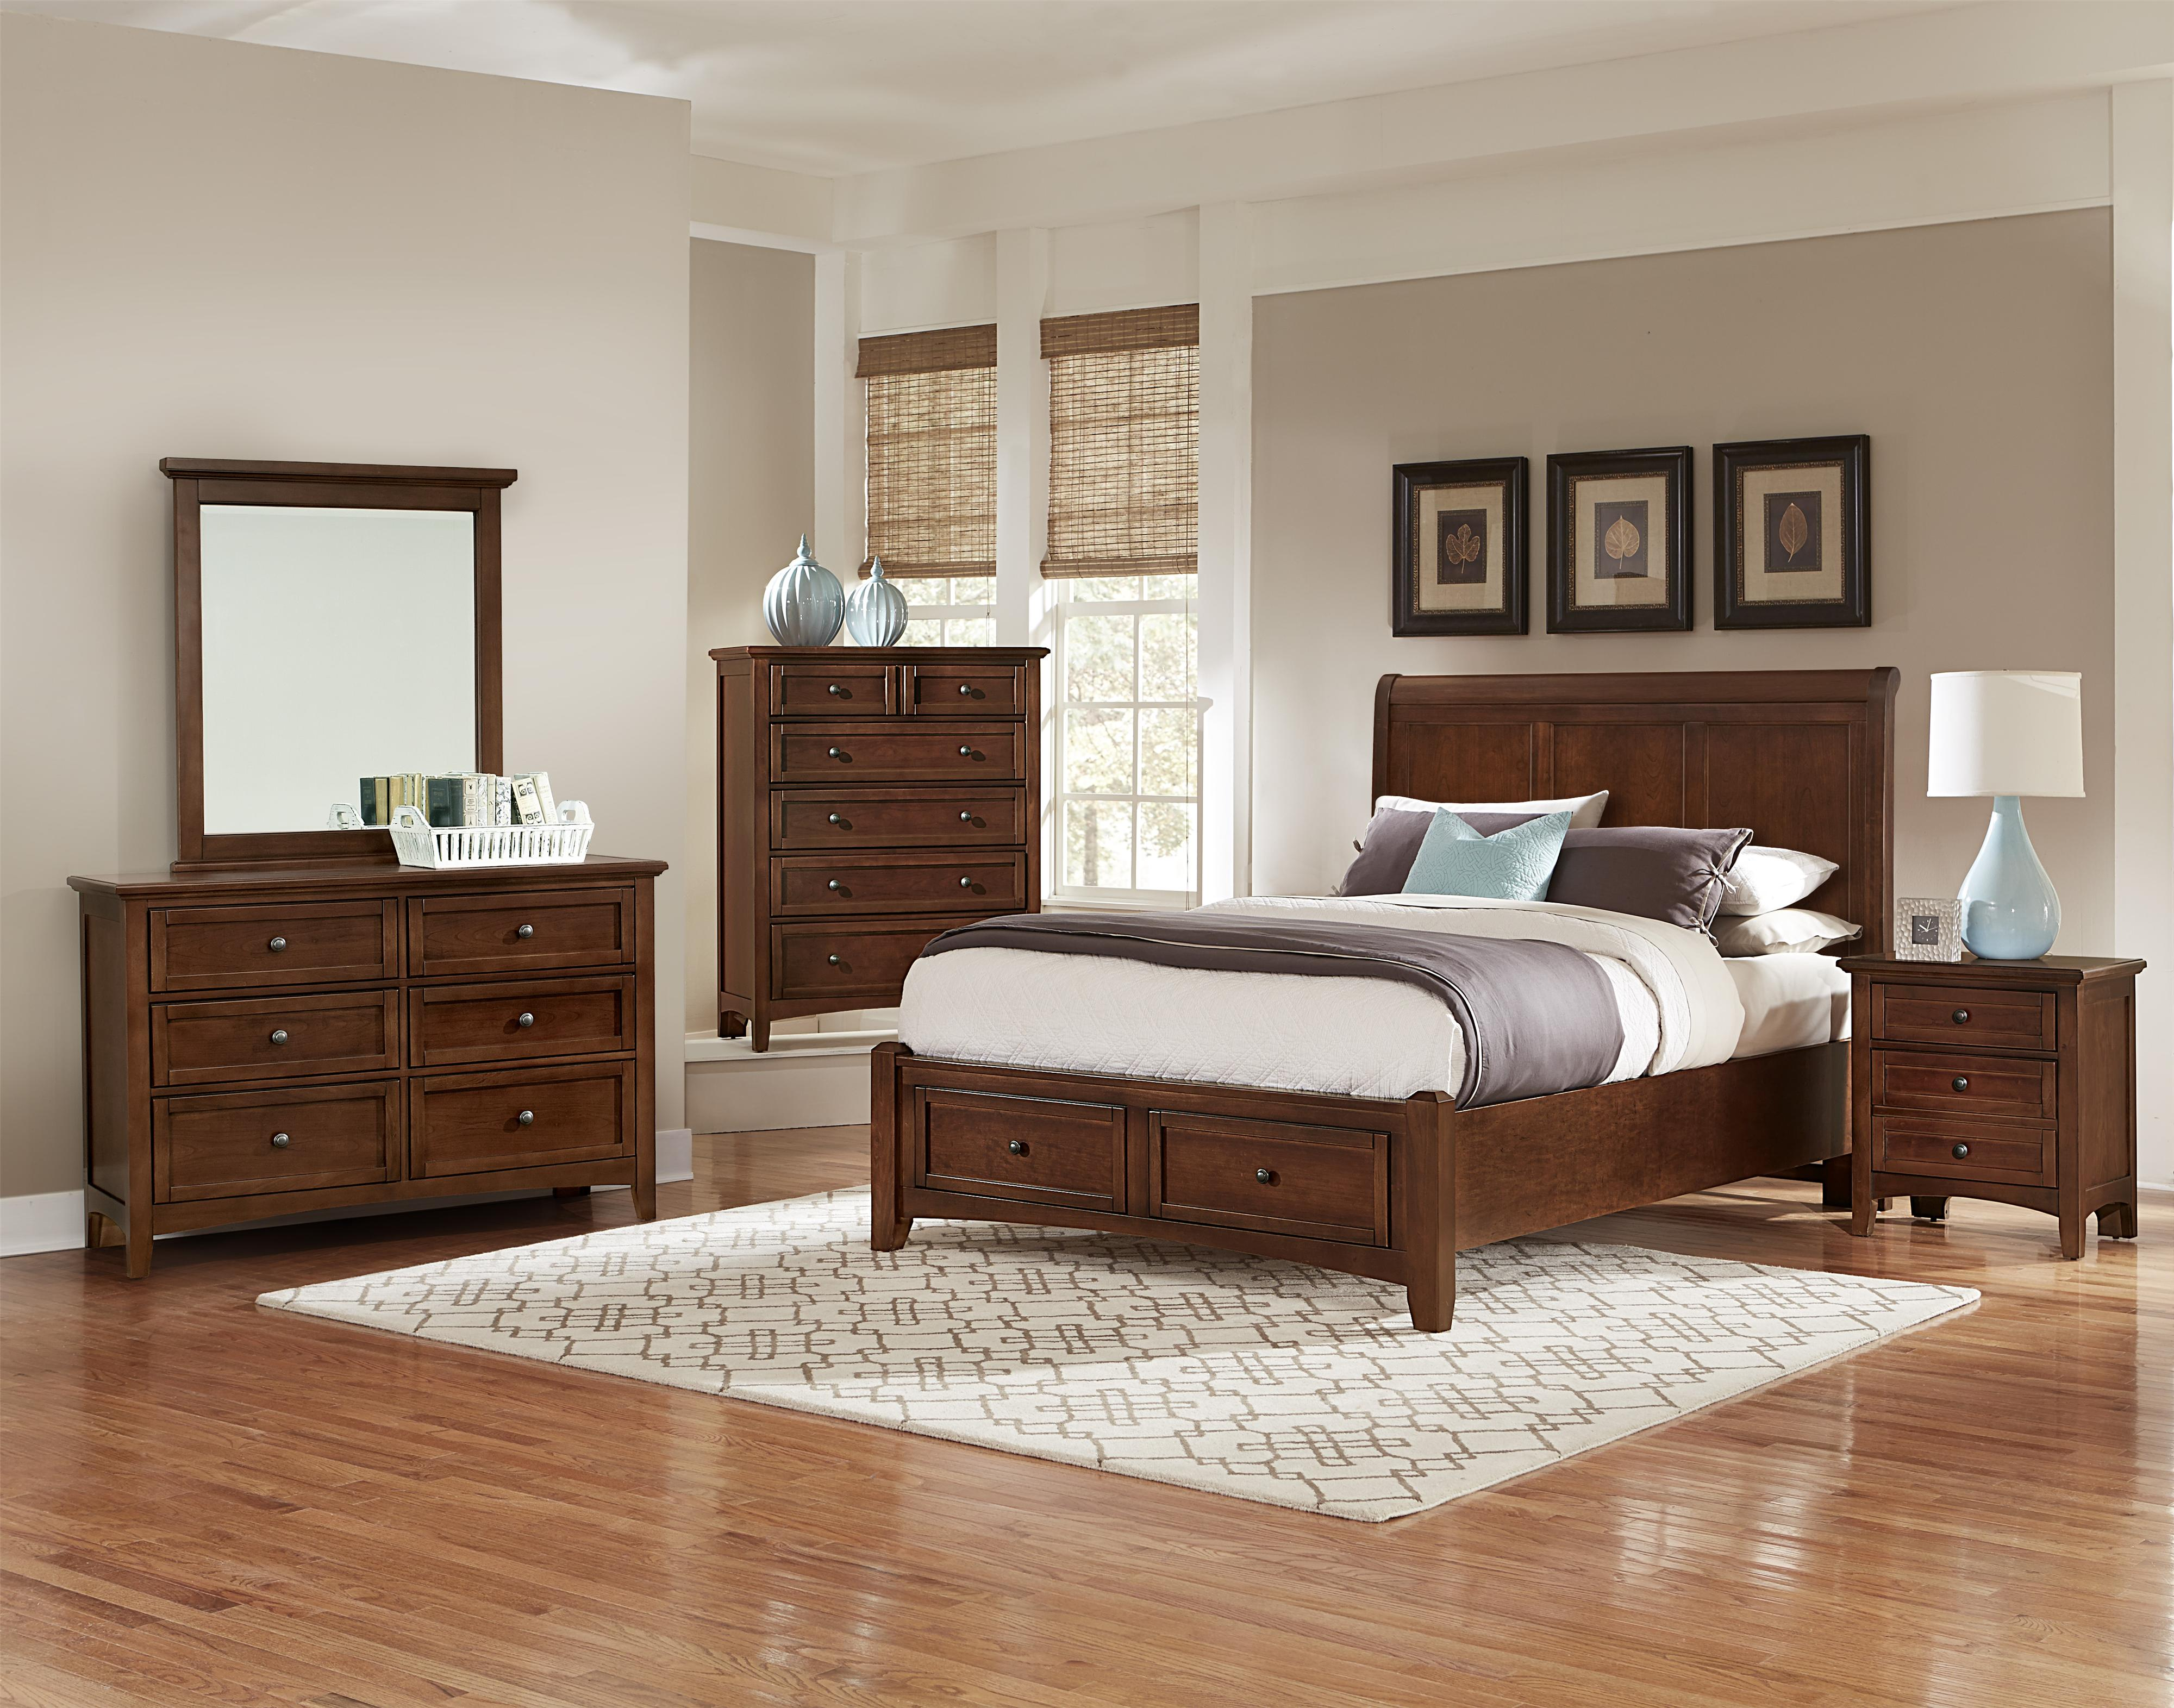 Bonanza Full Bedroom Group by Vaughan Bassett at Gill Brothers Furniture